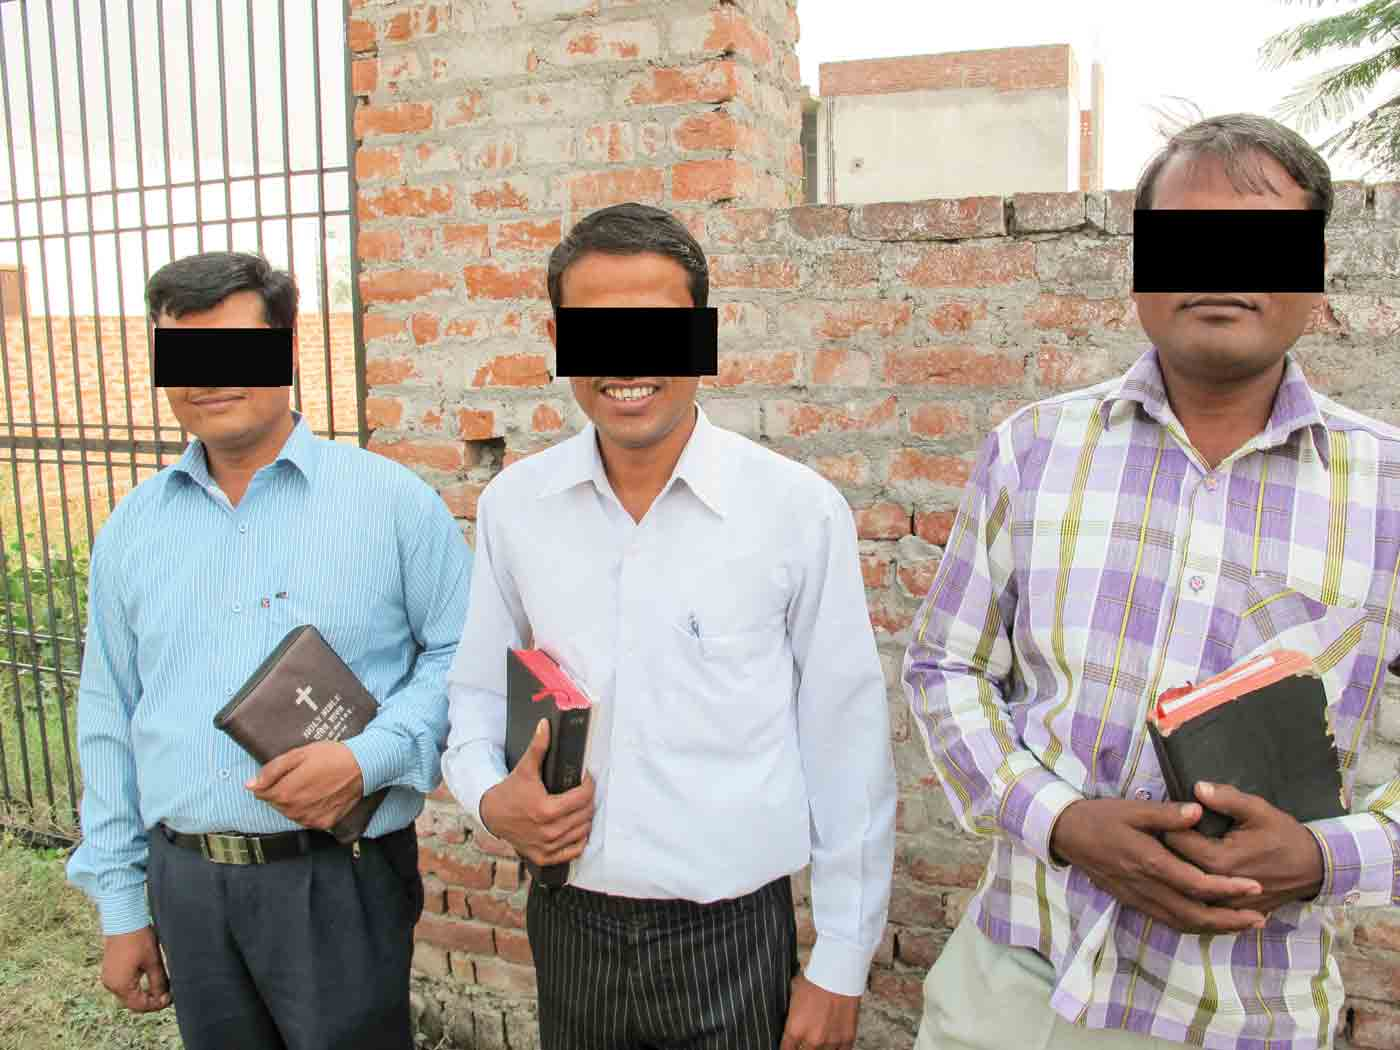 Nearly every week, a pastor is arrested in India after sharing the gospel.